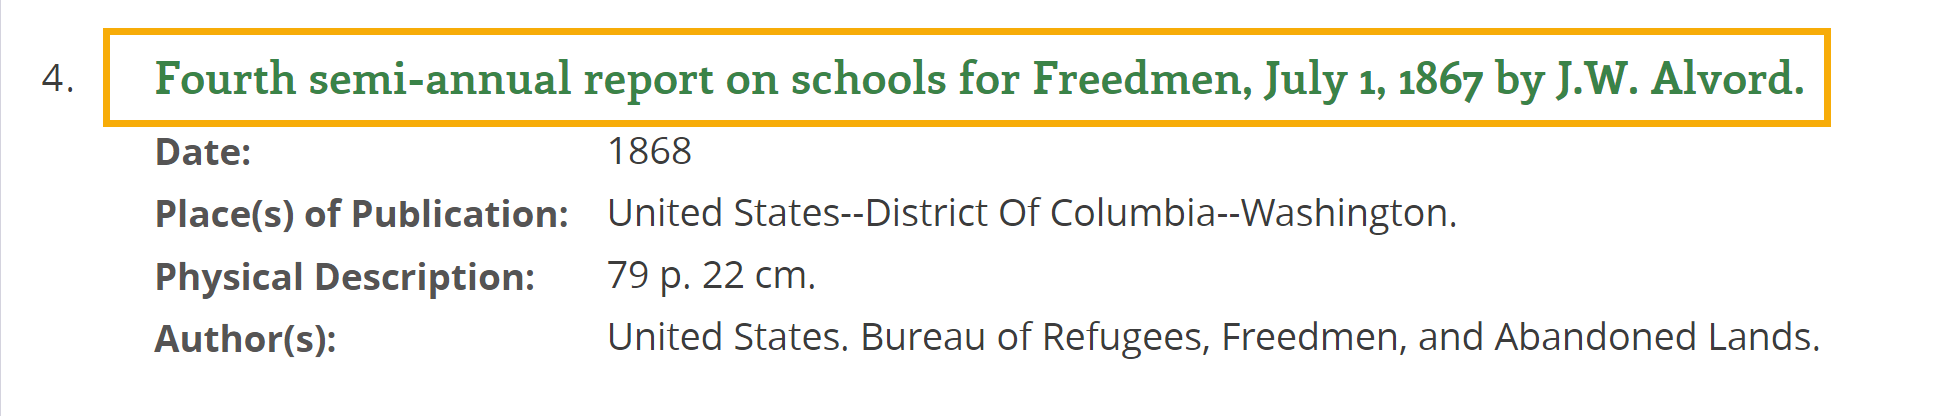 Screenshot of search result - Fourth semi-annual report on schools for Freedmen, July 1, 1867 by J.W. Alvord